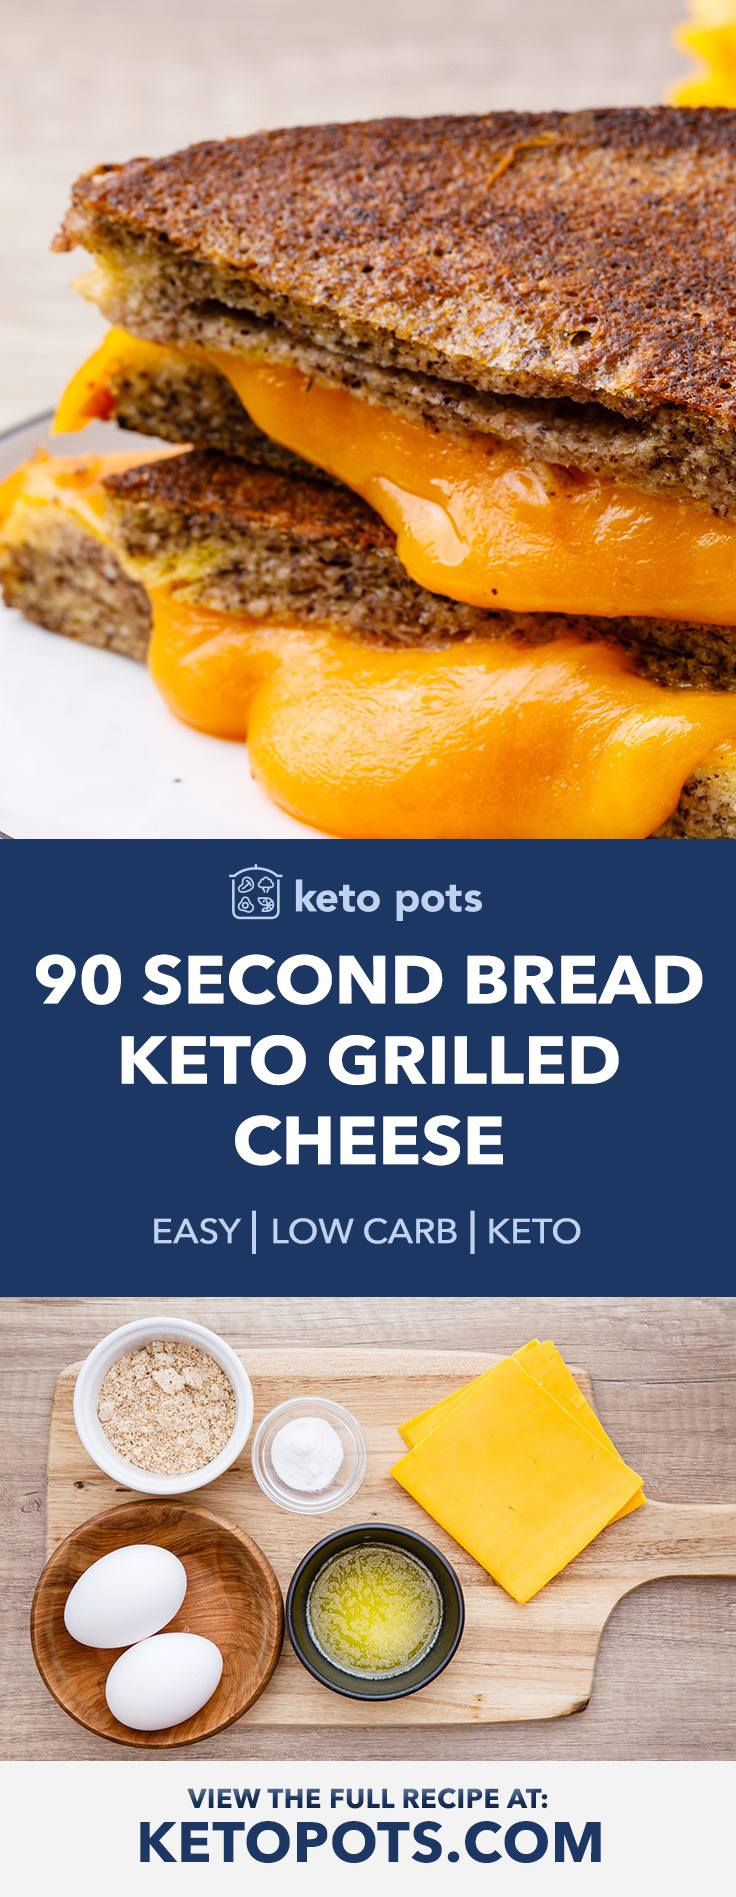 How to Make the Best Keto Grilled Cheese with 90 Second Bread